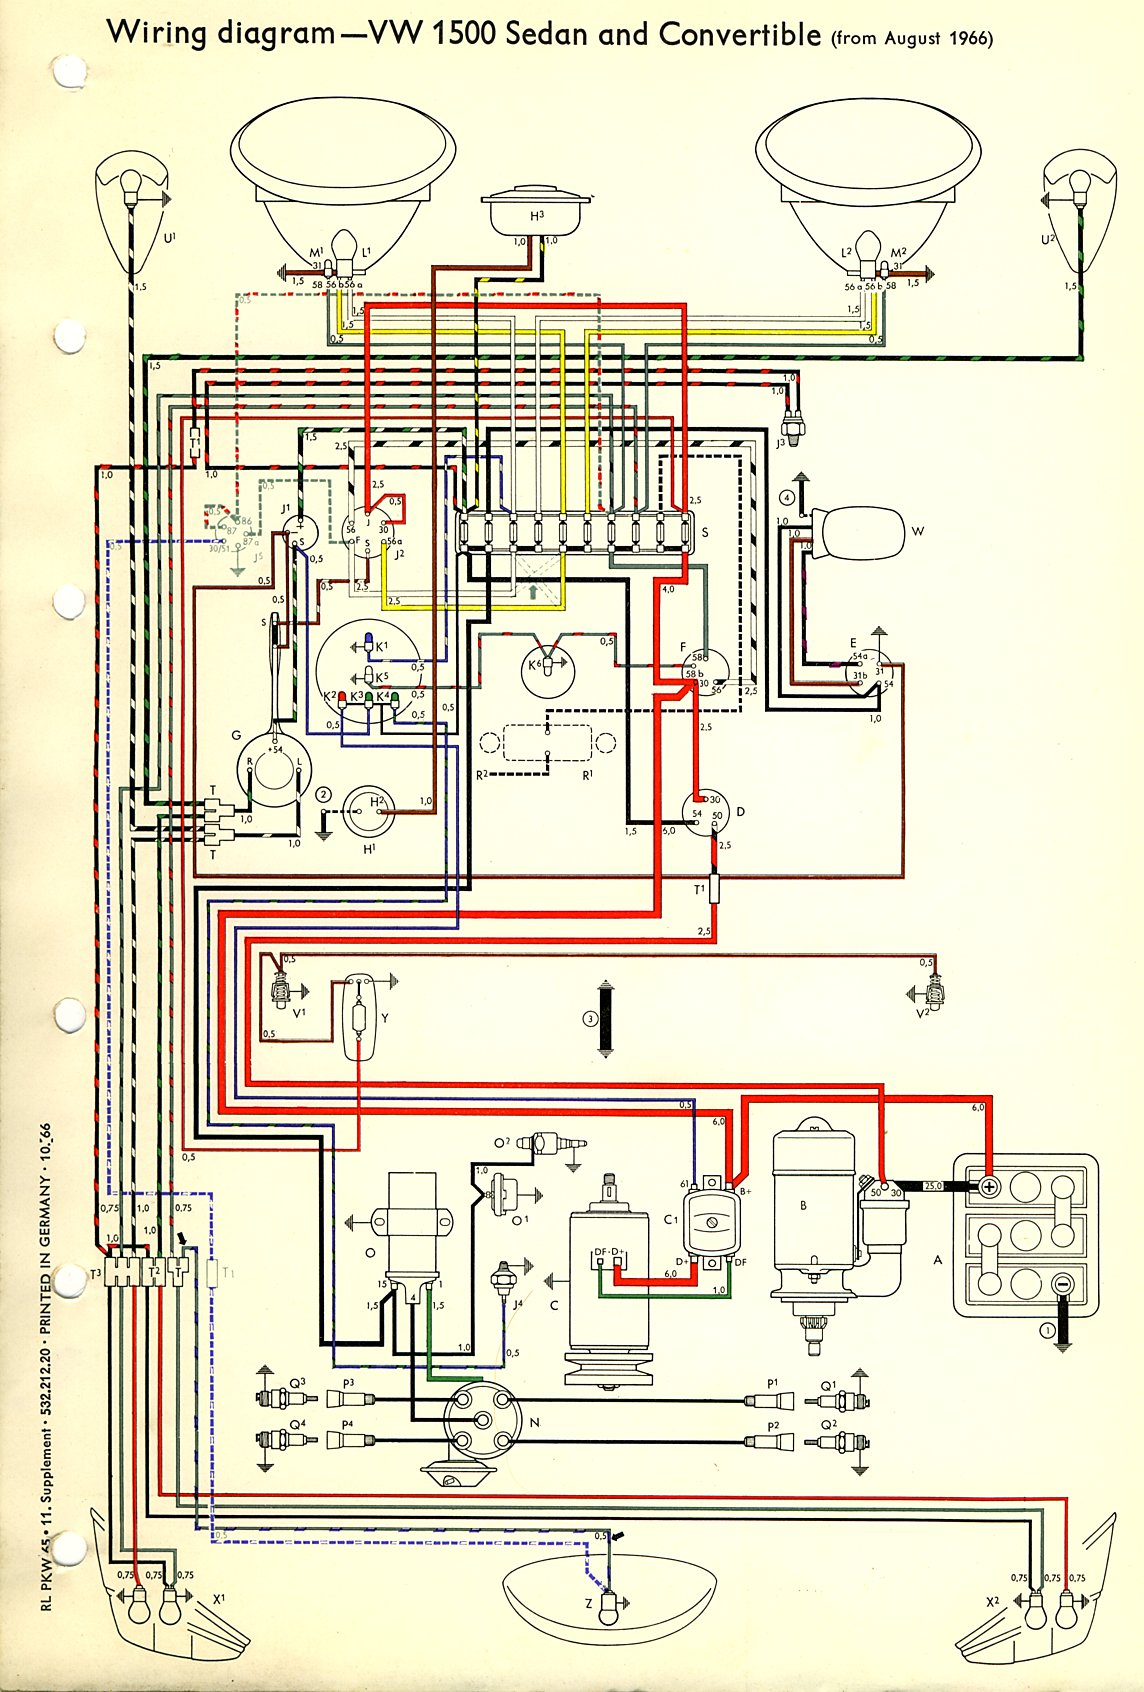 Vw Thing Wiring Harness Diagram Schematics Jensen Uv10 1974 Ford Bronco Diagrams